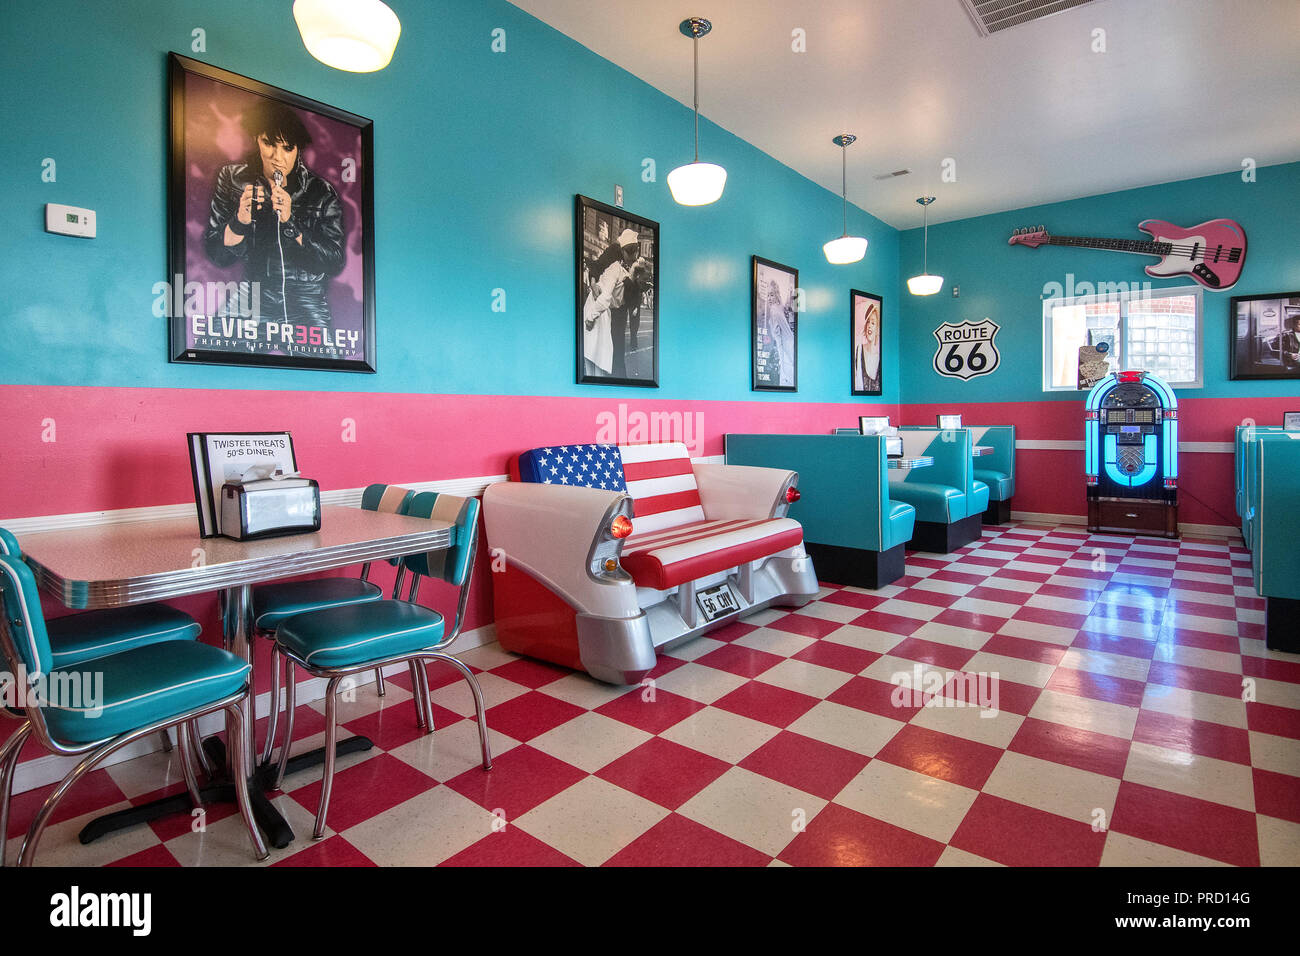 Twistee Treat Diner and Pink Elephant Antique Mall on Route 66, Livingston, Illinois, USA. - Stock Image